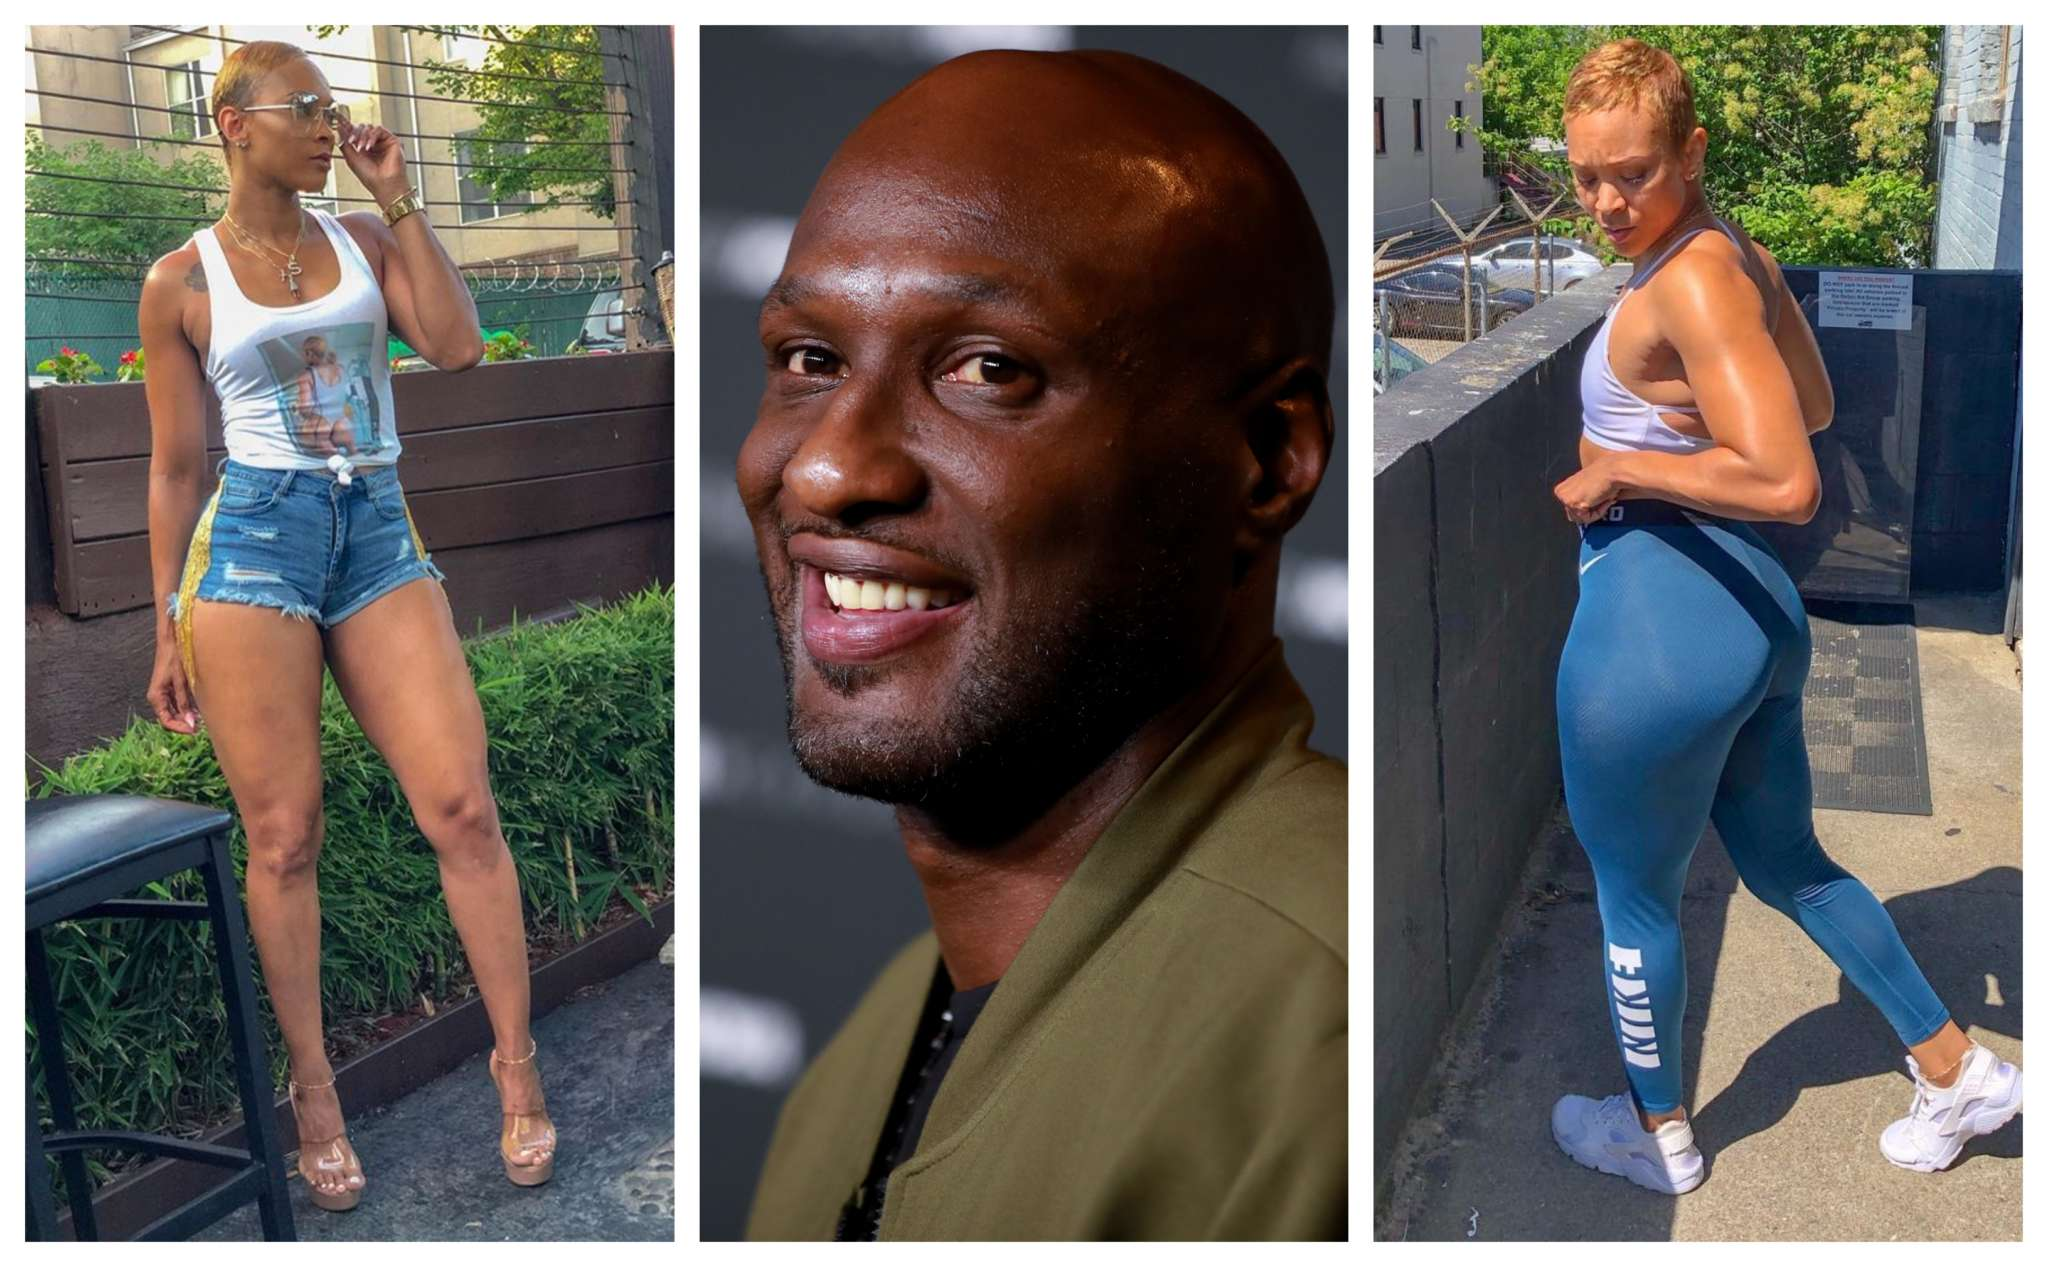 Lamar Odom Steps Out with New Girlfriend, Defends Her on Social Media